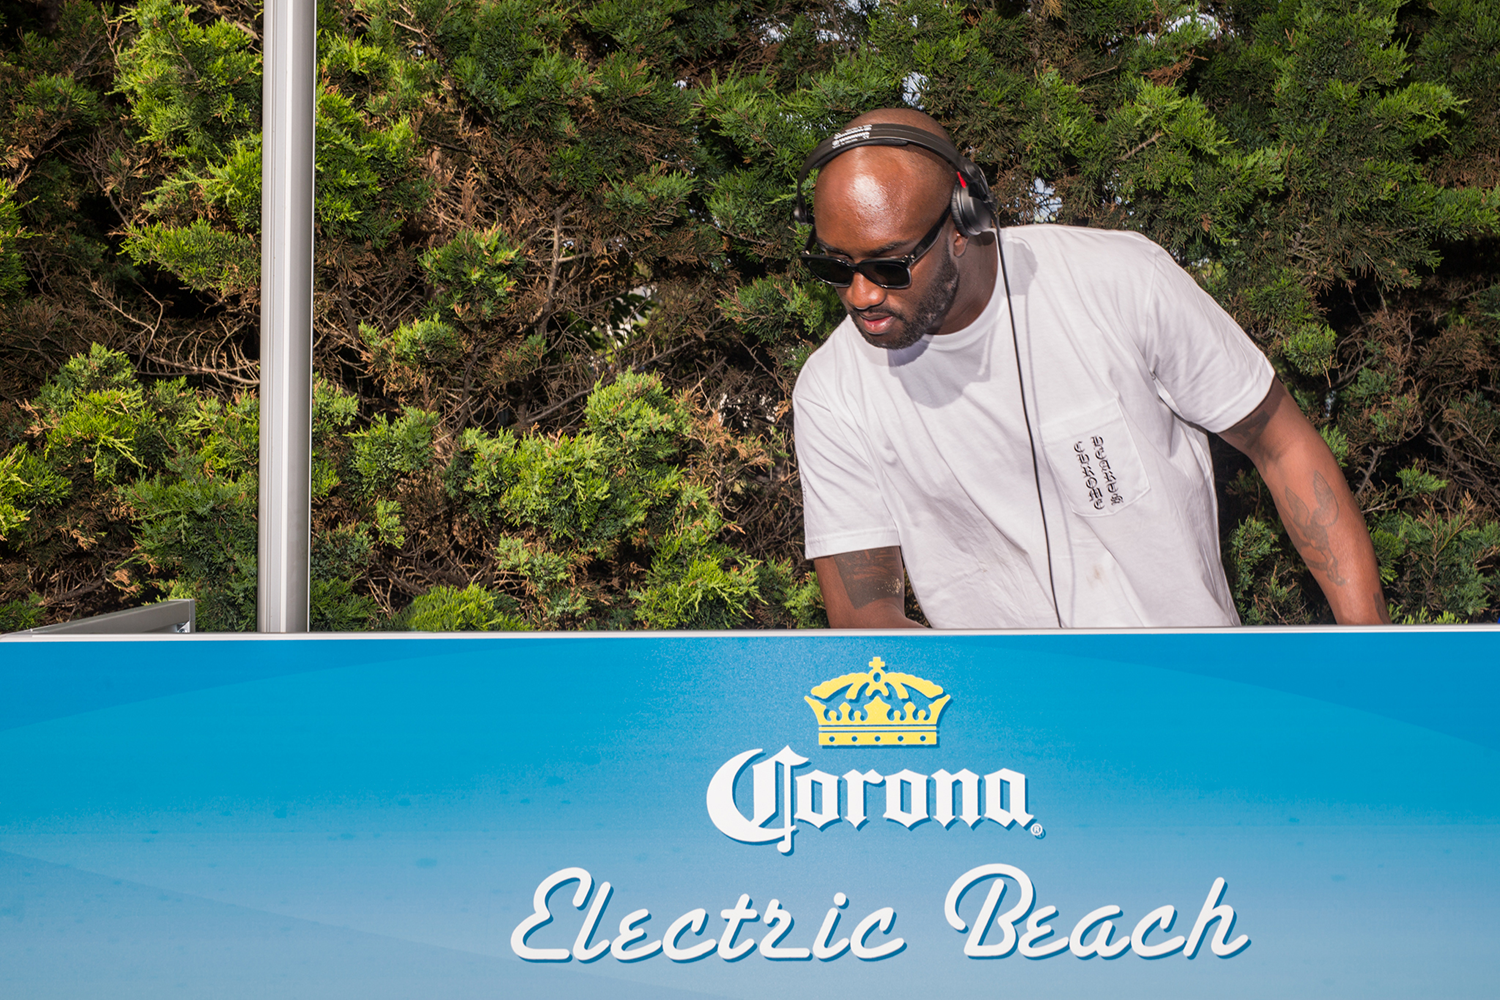 Virgil Abloh (Corona Electric Beach)